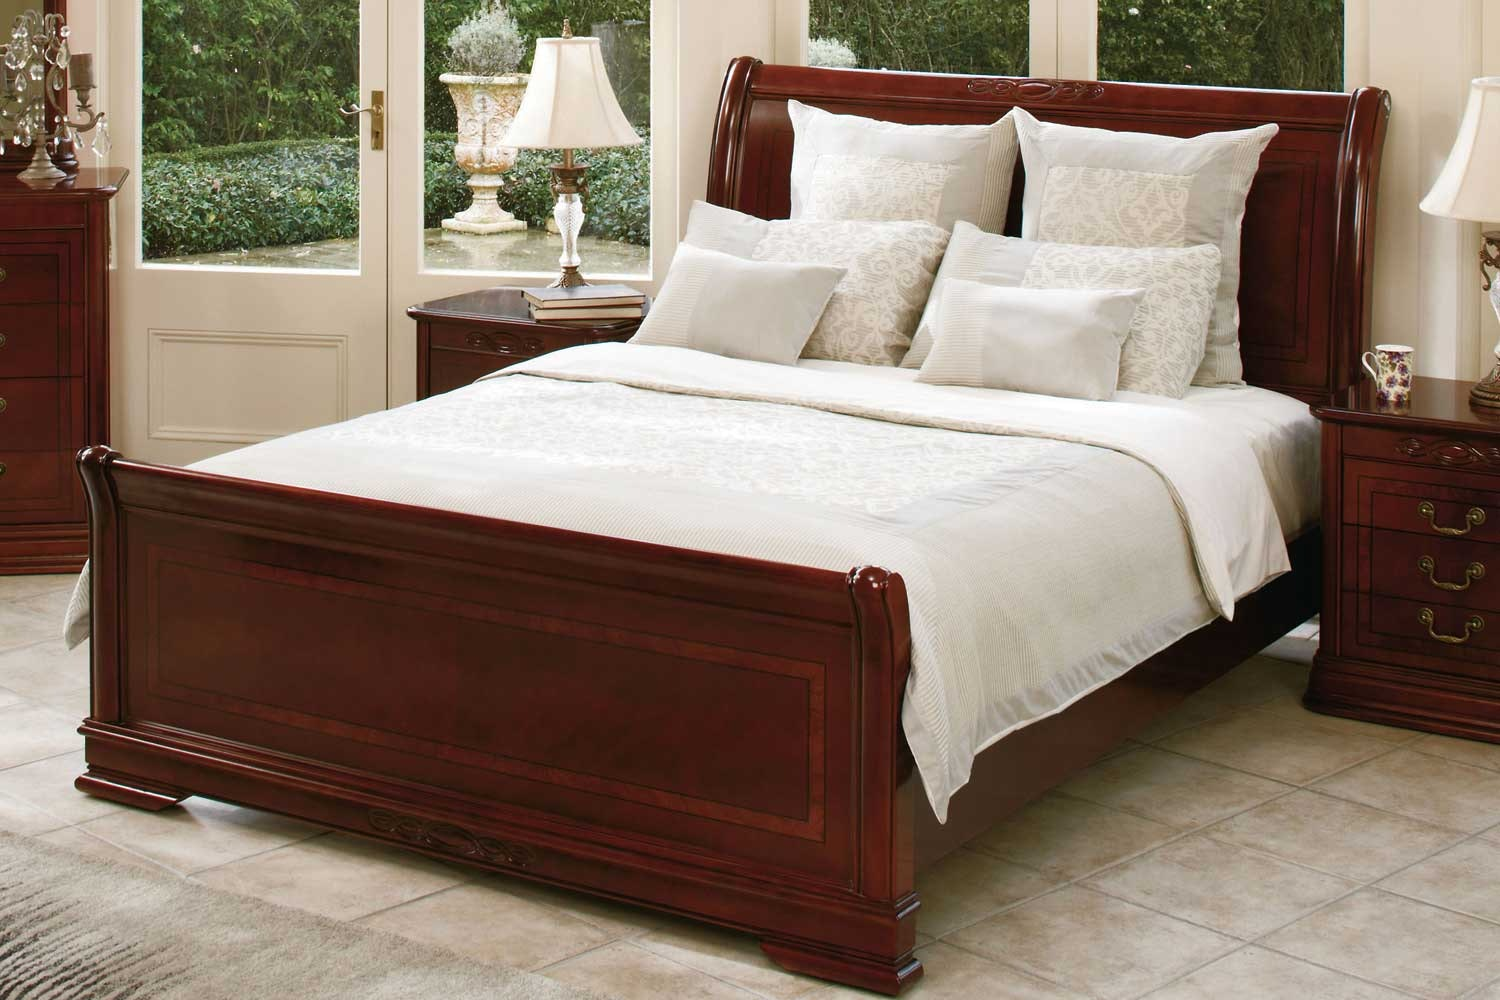 Windsor Park Bed Frame